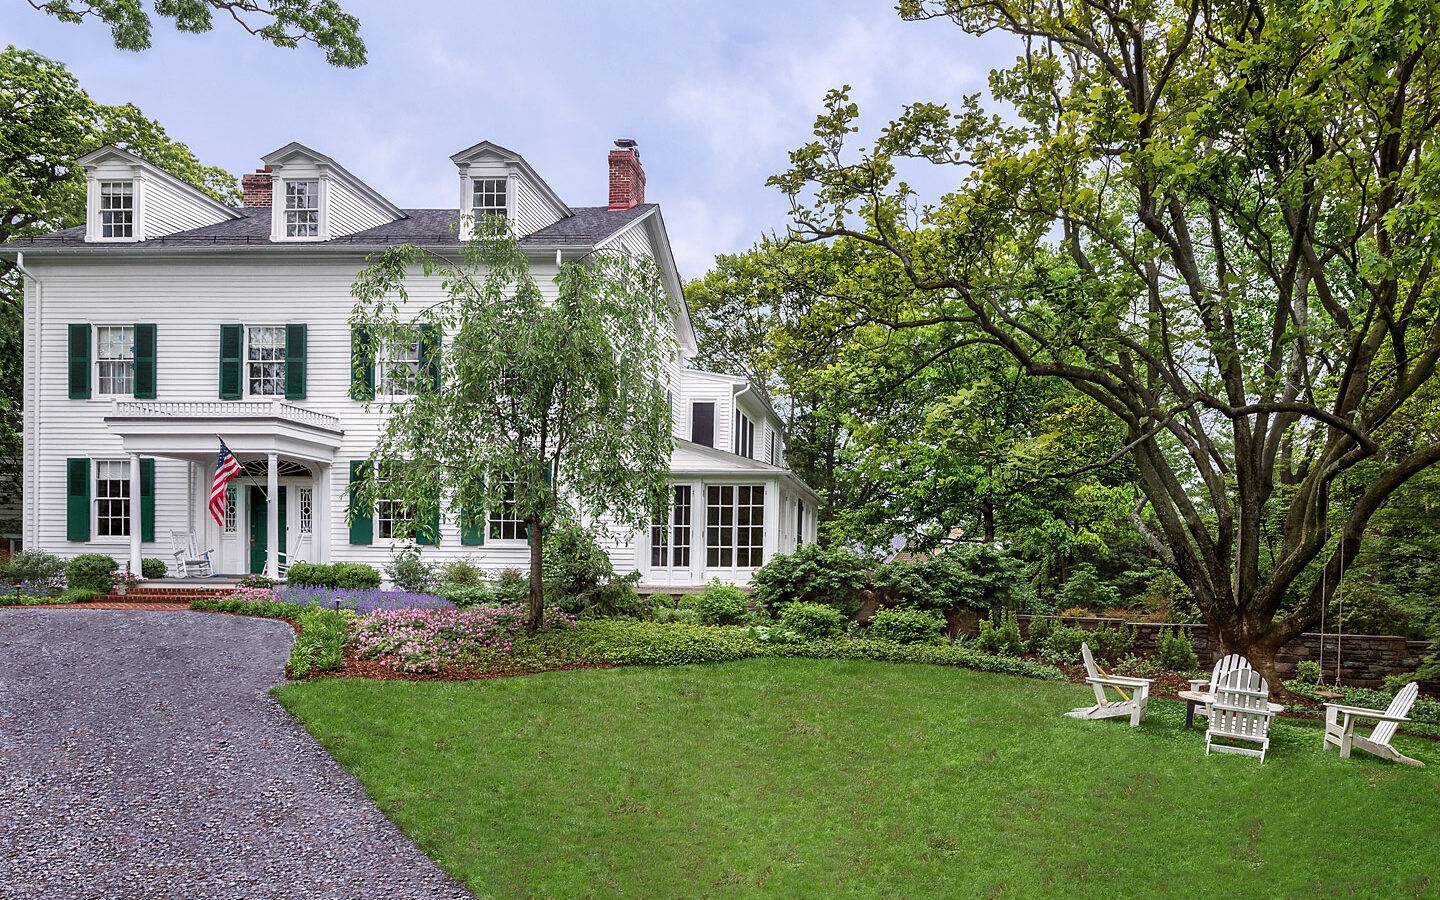 Entrance gardens to historic Maryland home